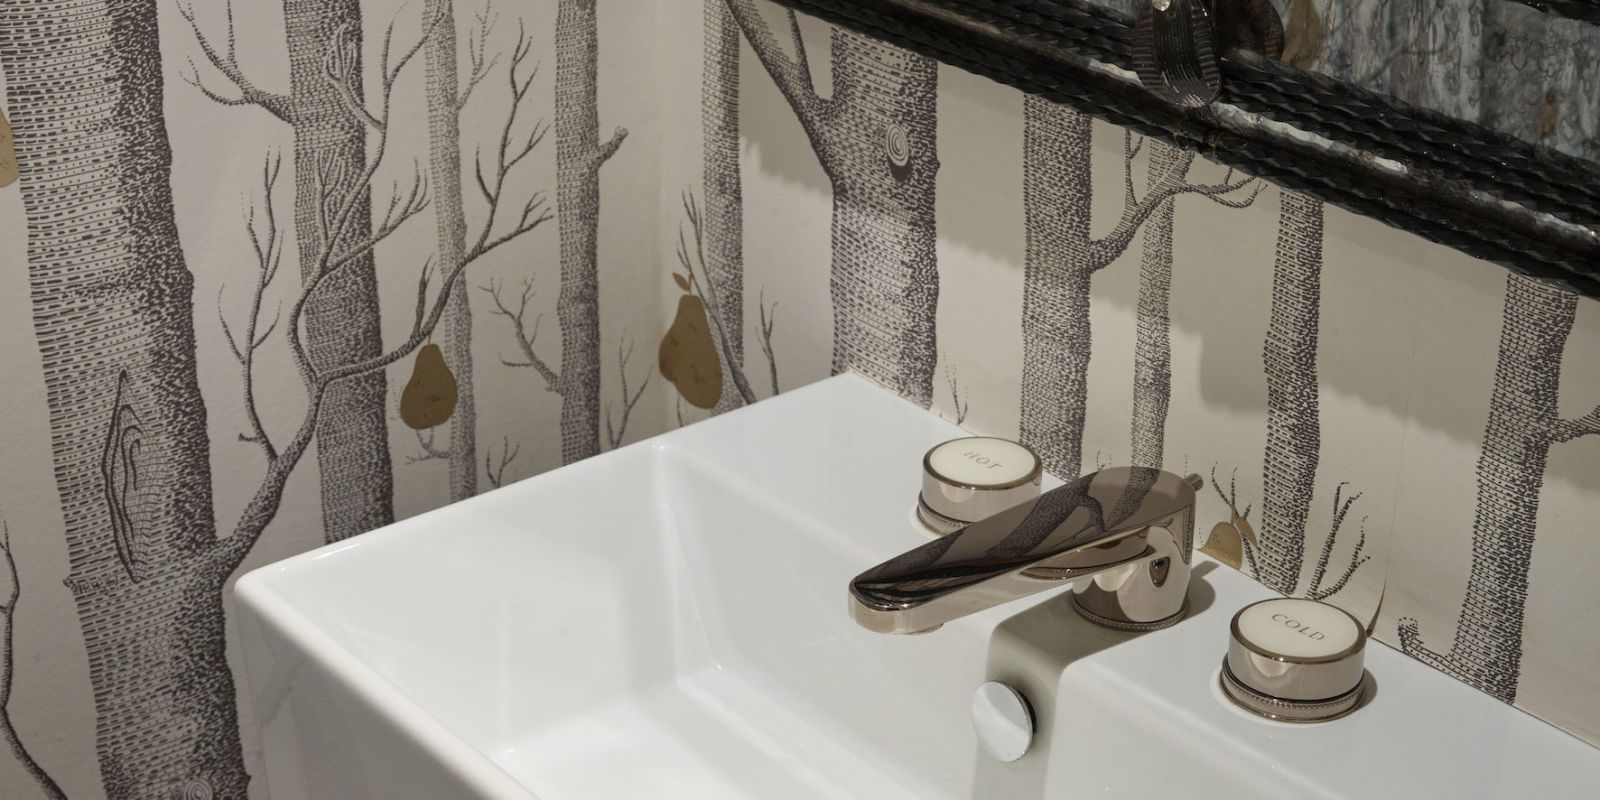 Downstairs Toilet Ideas   8 Best Ways To Transform Your Cloakroomu0027s Decor